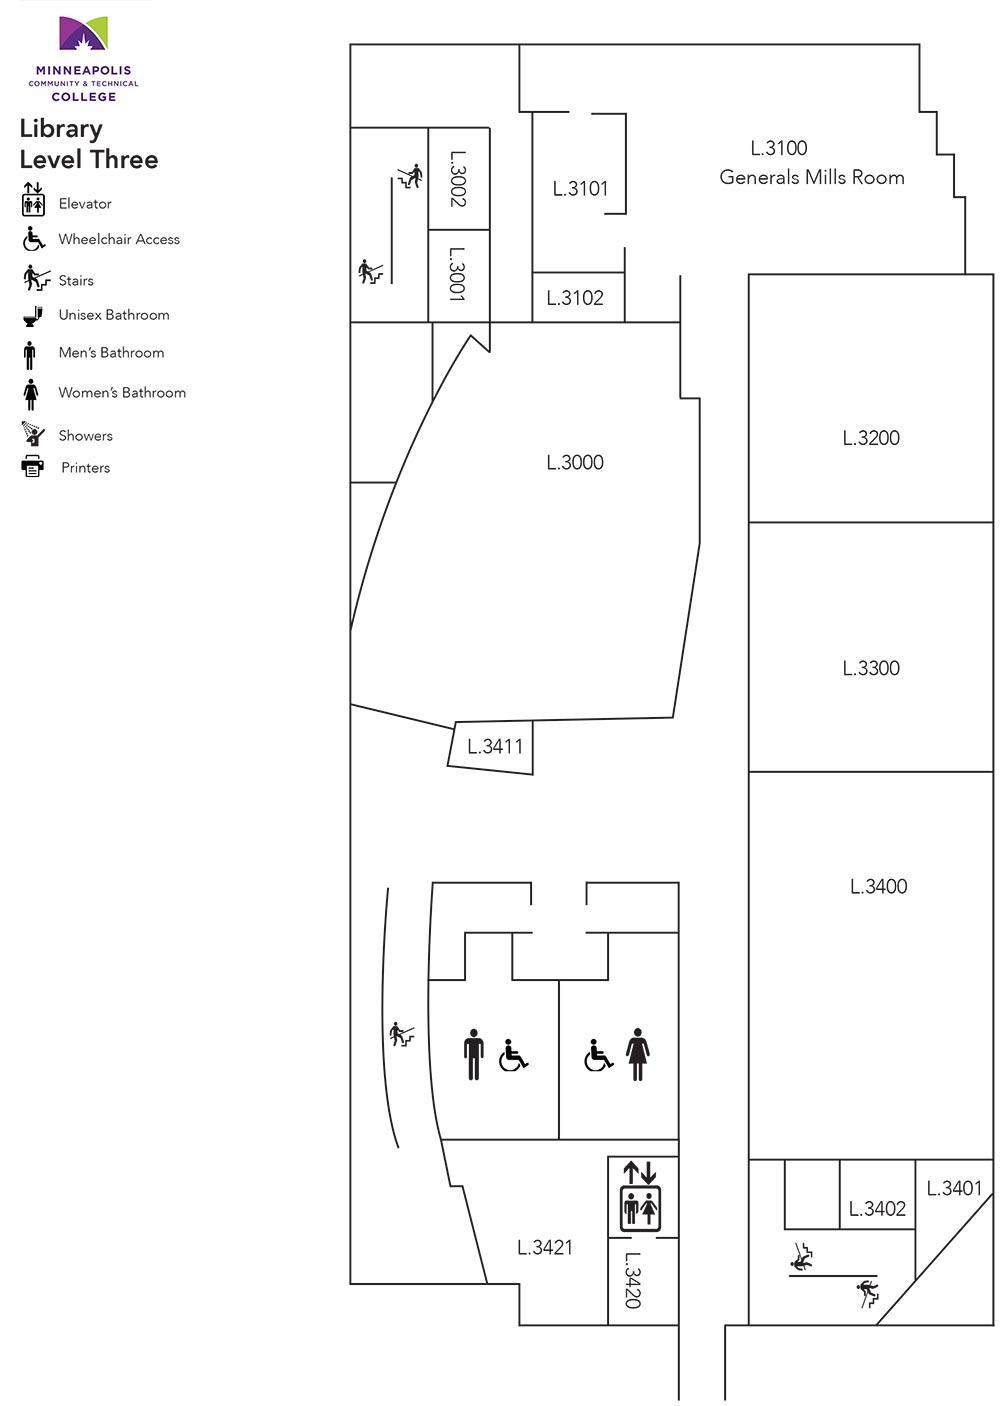 Whitney Hall (Library) Level Three Floor Plans